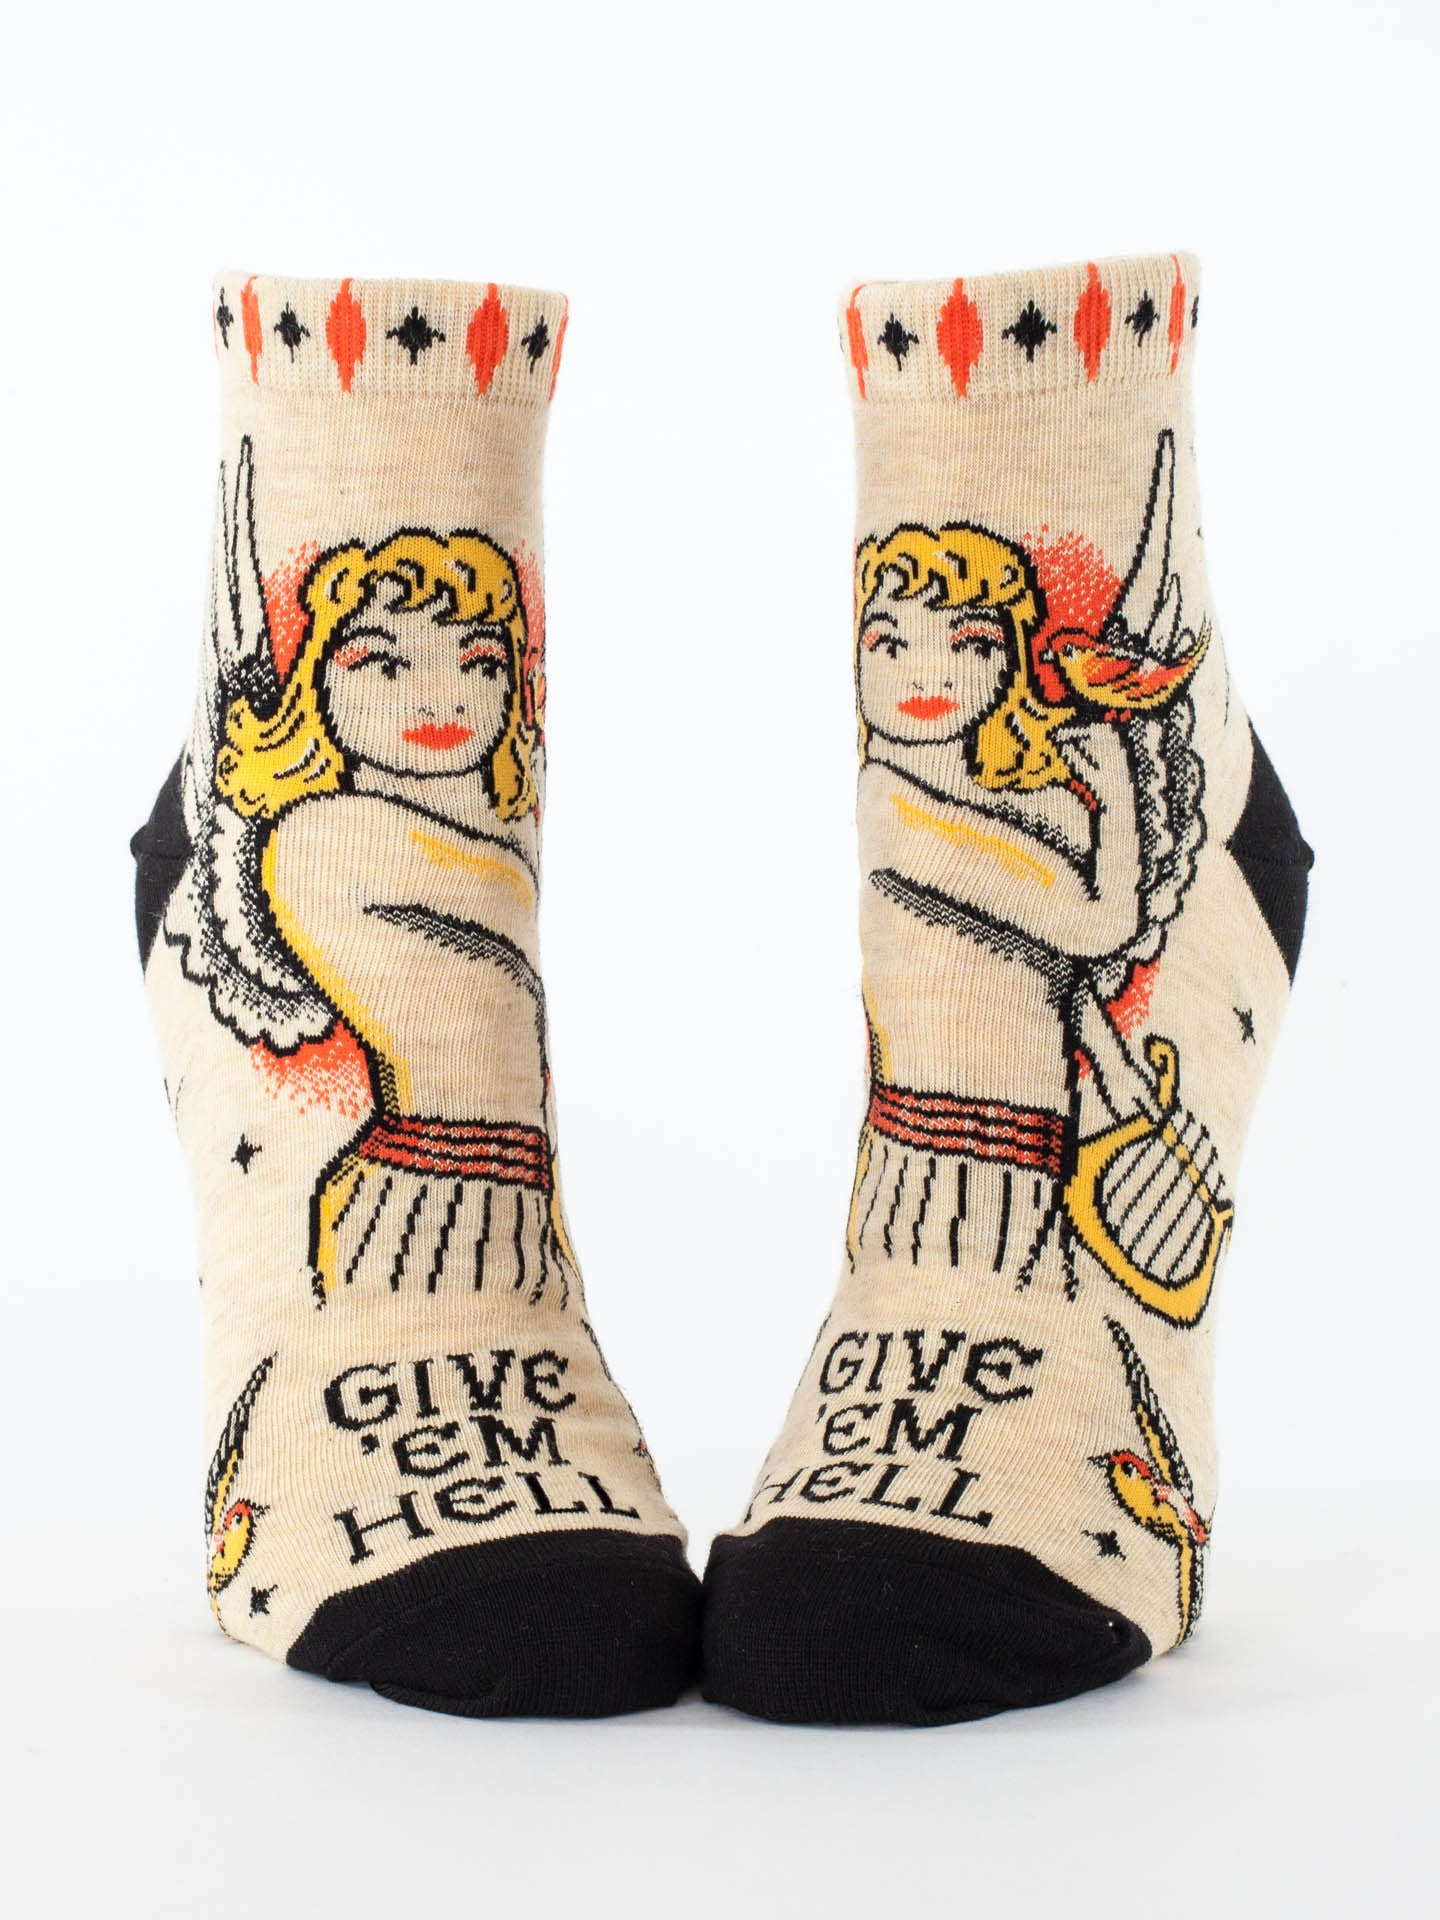 SALE - Women's Give 'Em Hell Ankle